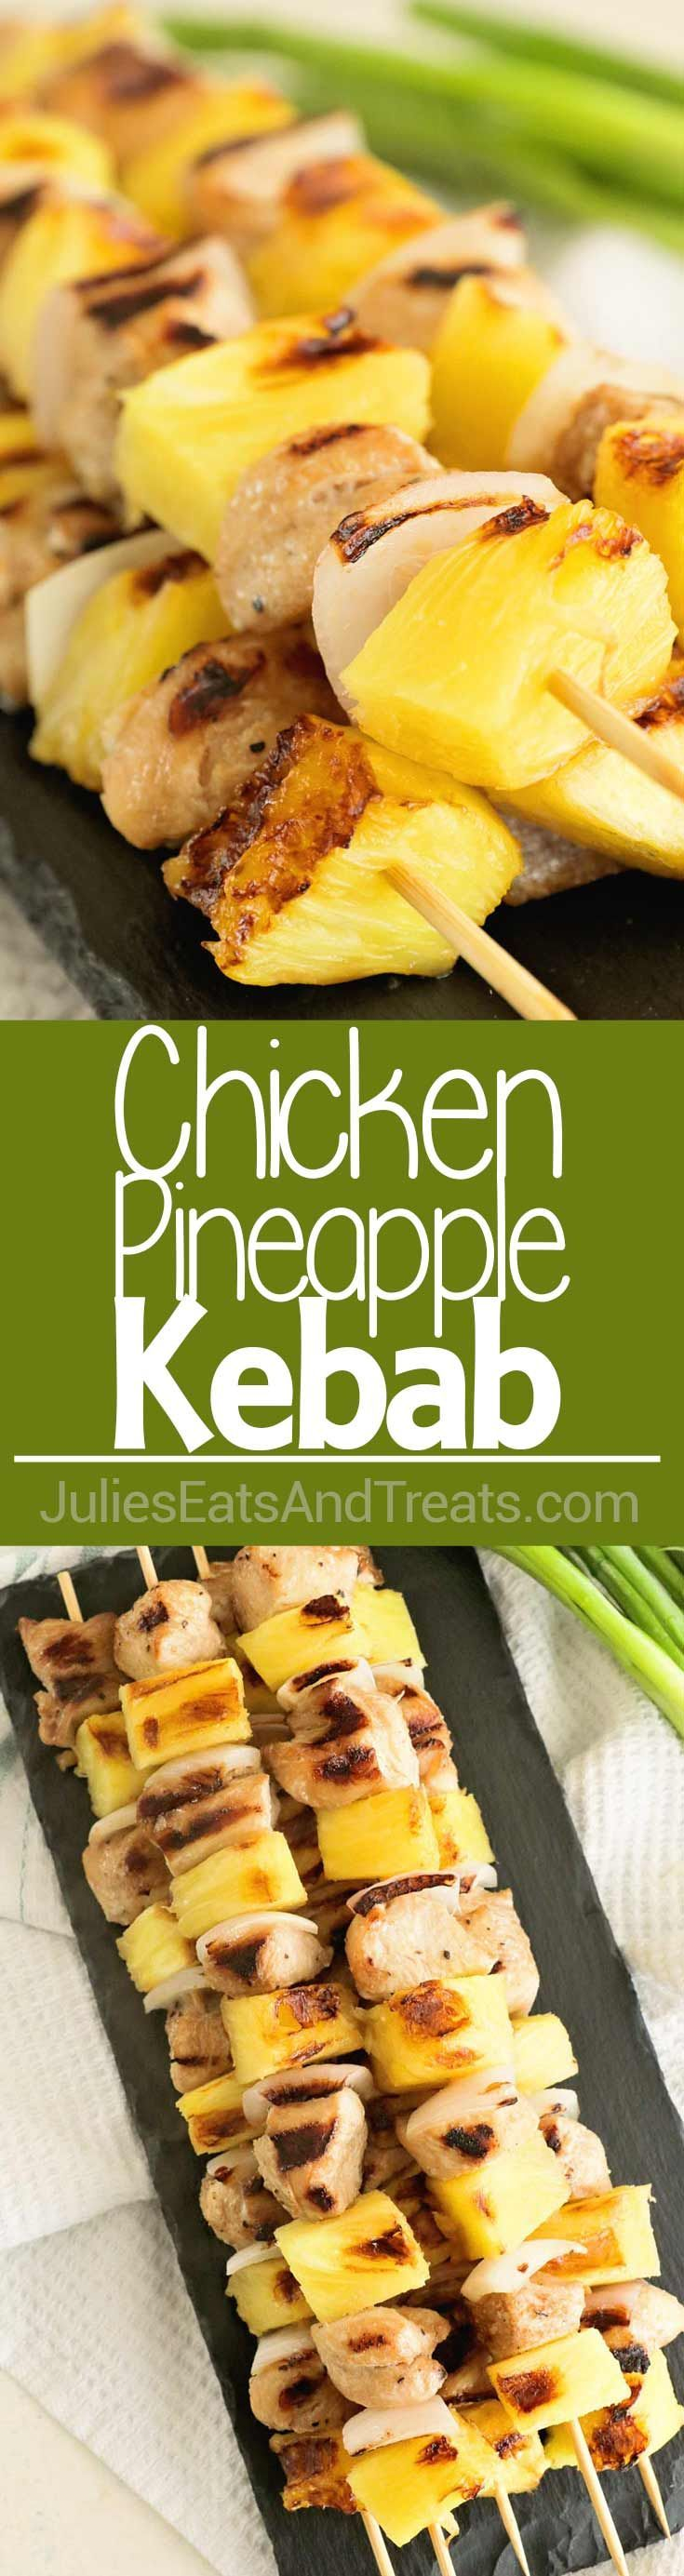 Chicken Pineapple Kebabs ~ Quick and Easy Marinated Skewrs that are the Perfect Combination of Sweet and Tangy! ~ http://www.julieseatsandtreats.com